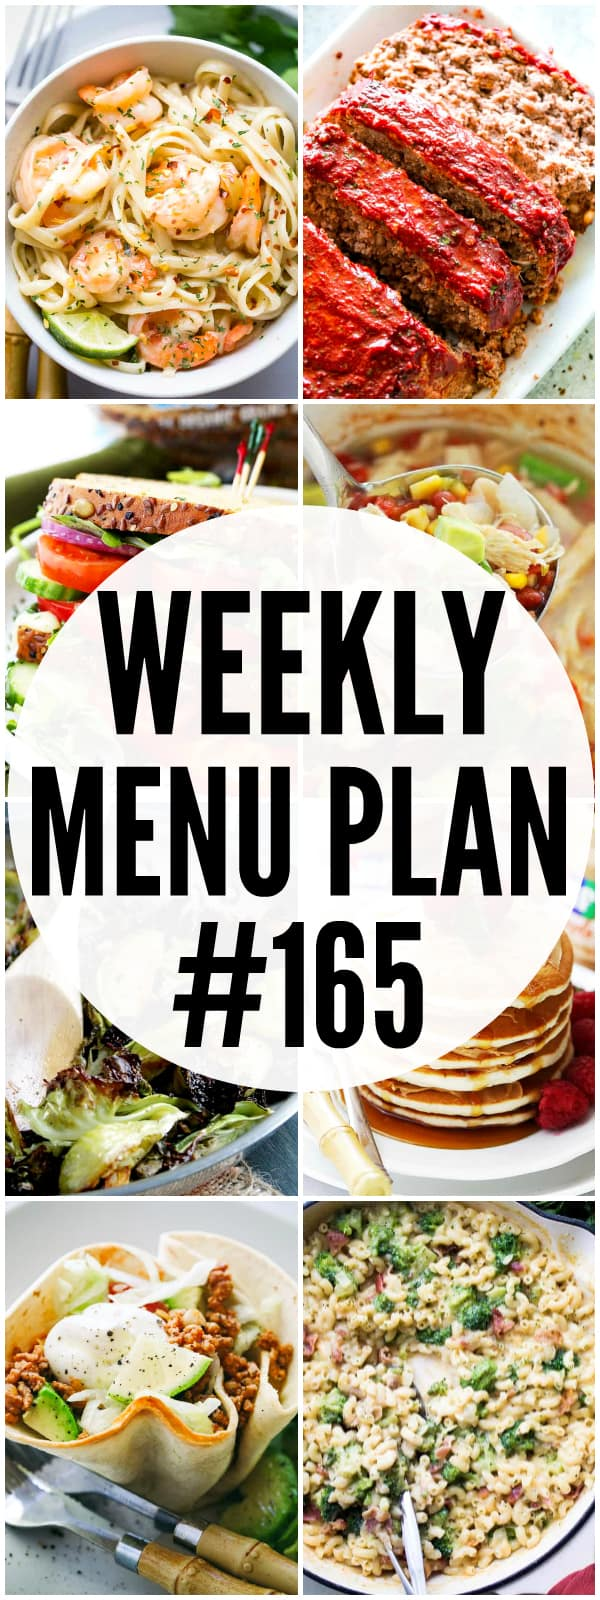 WEEKLY MENU PLAN (#165) - A delicious collection of dinner, side dish and dessert recipes to help you plan your weekly menu and make life easier for you.